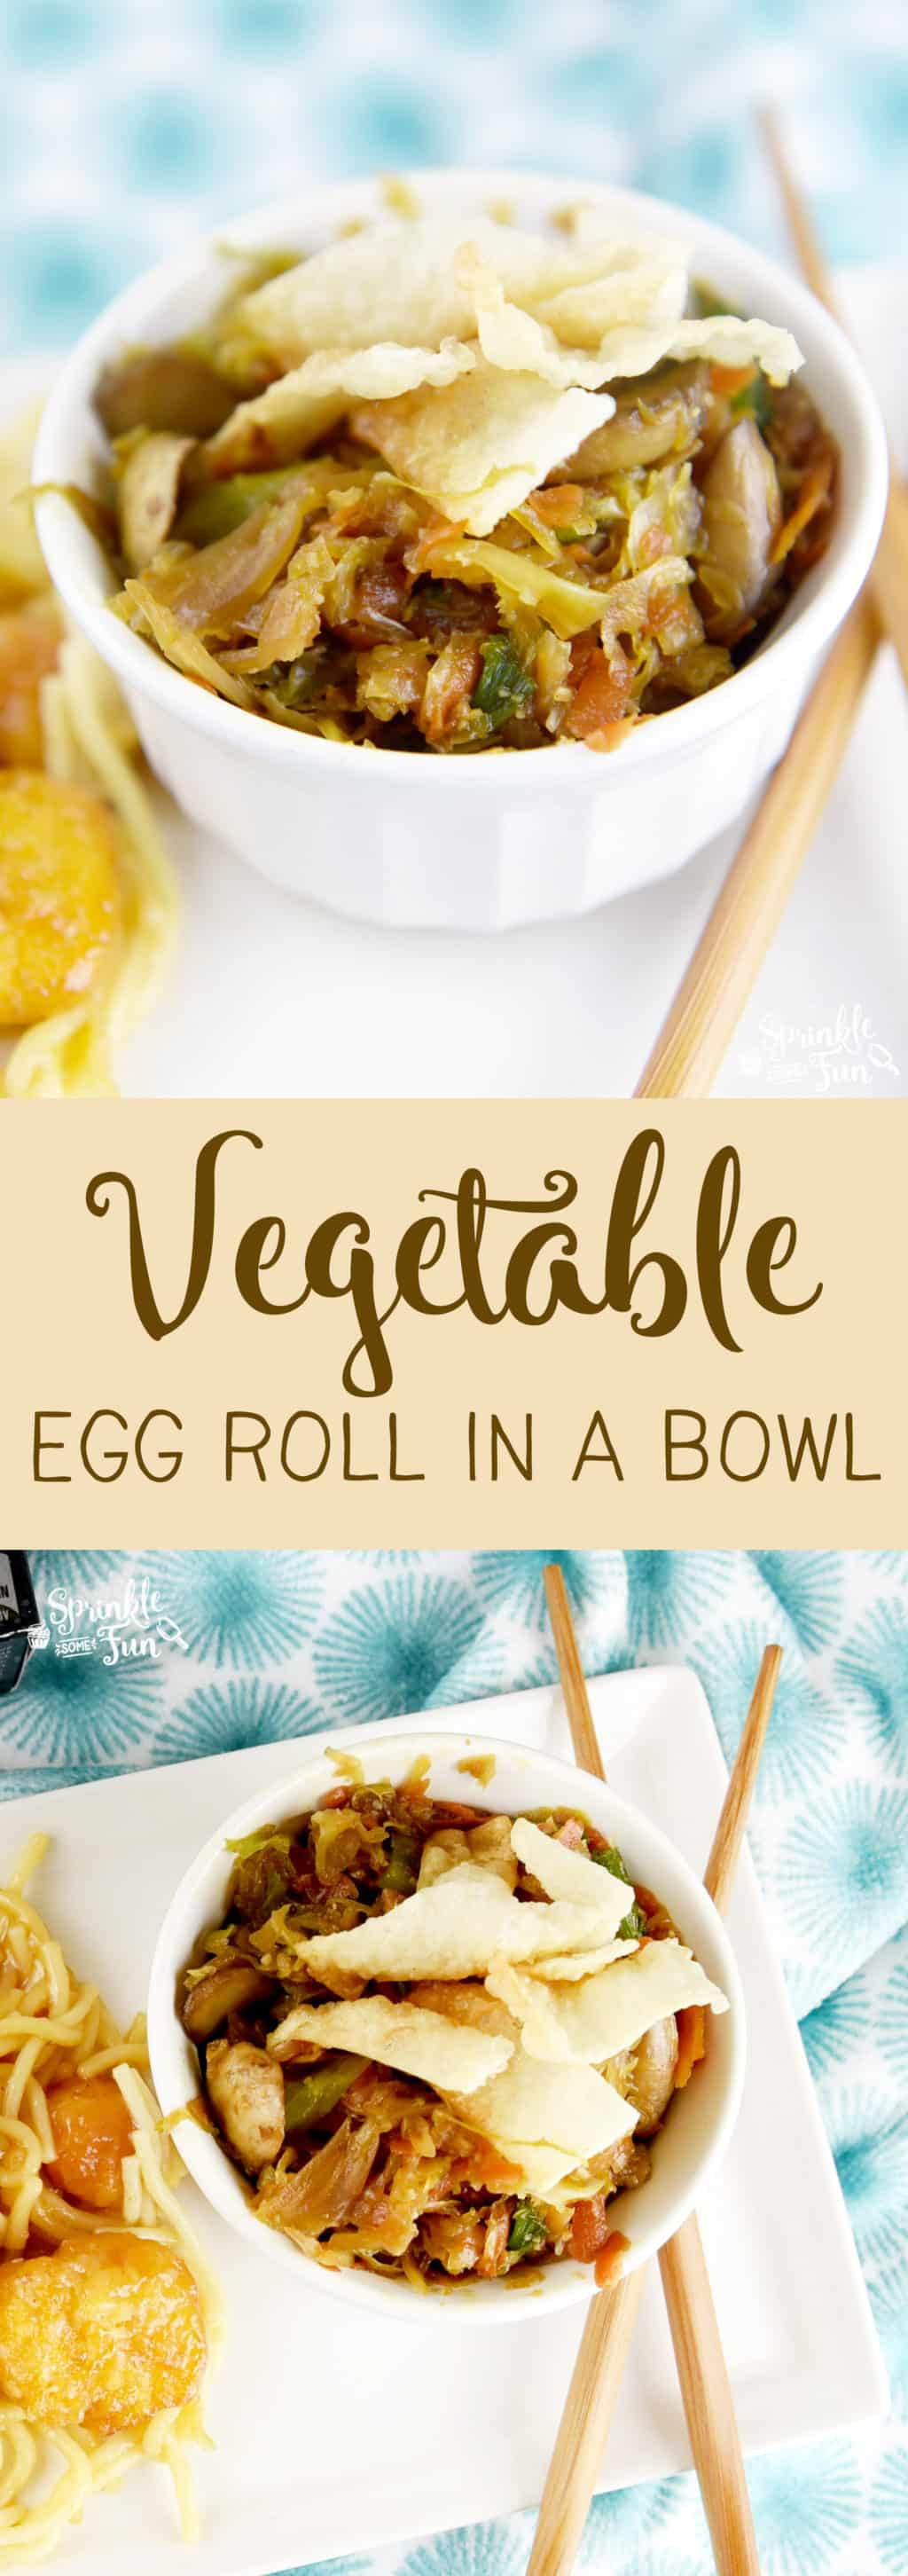 This Vegetable Egg Roll in a bowl is quick to make and tastes great!  A simple side that tastes just like an eggroll!